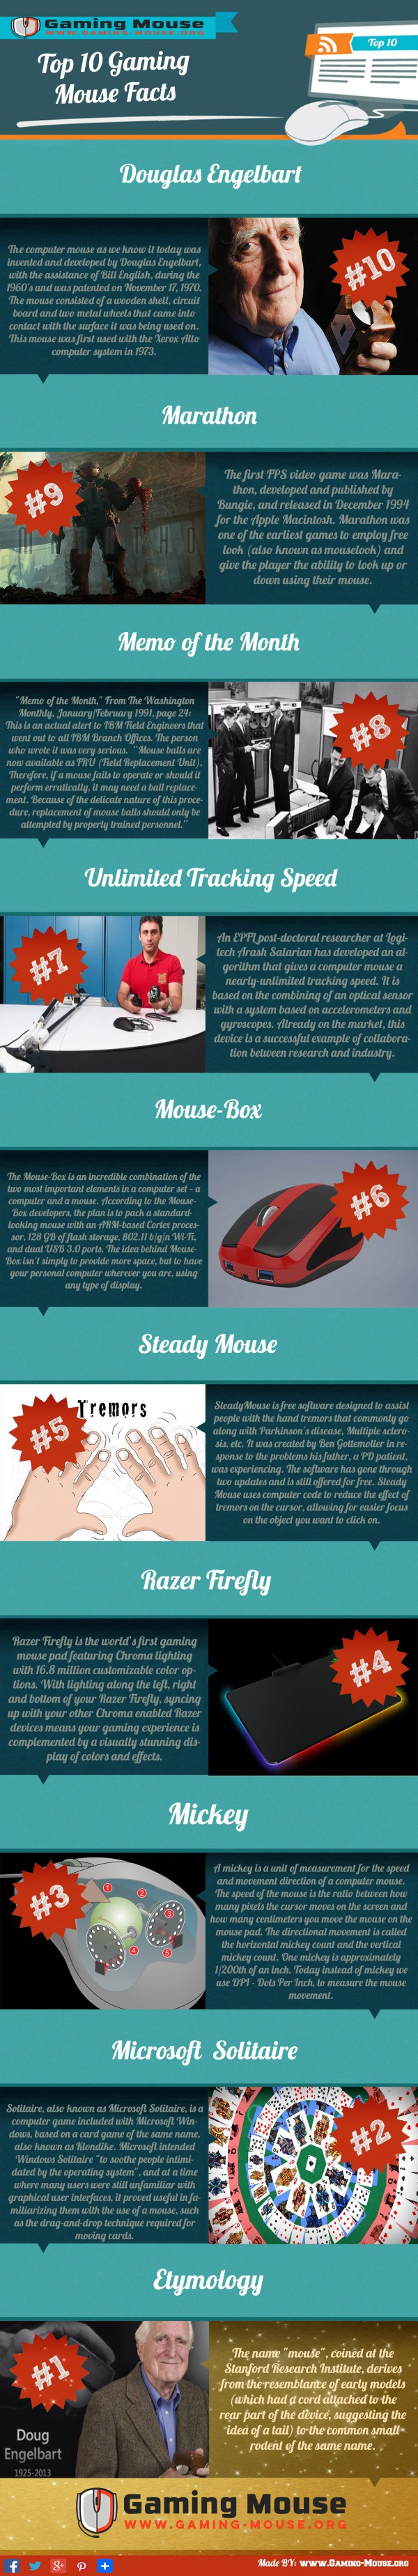 Top_10_Gaming_Mouse_Facts